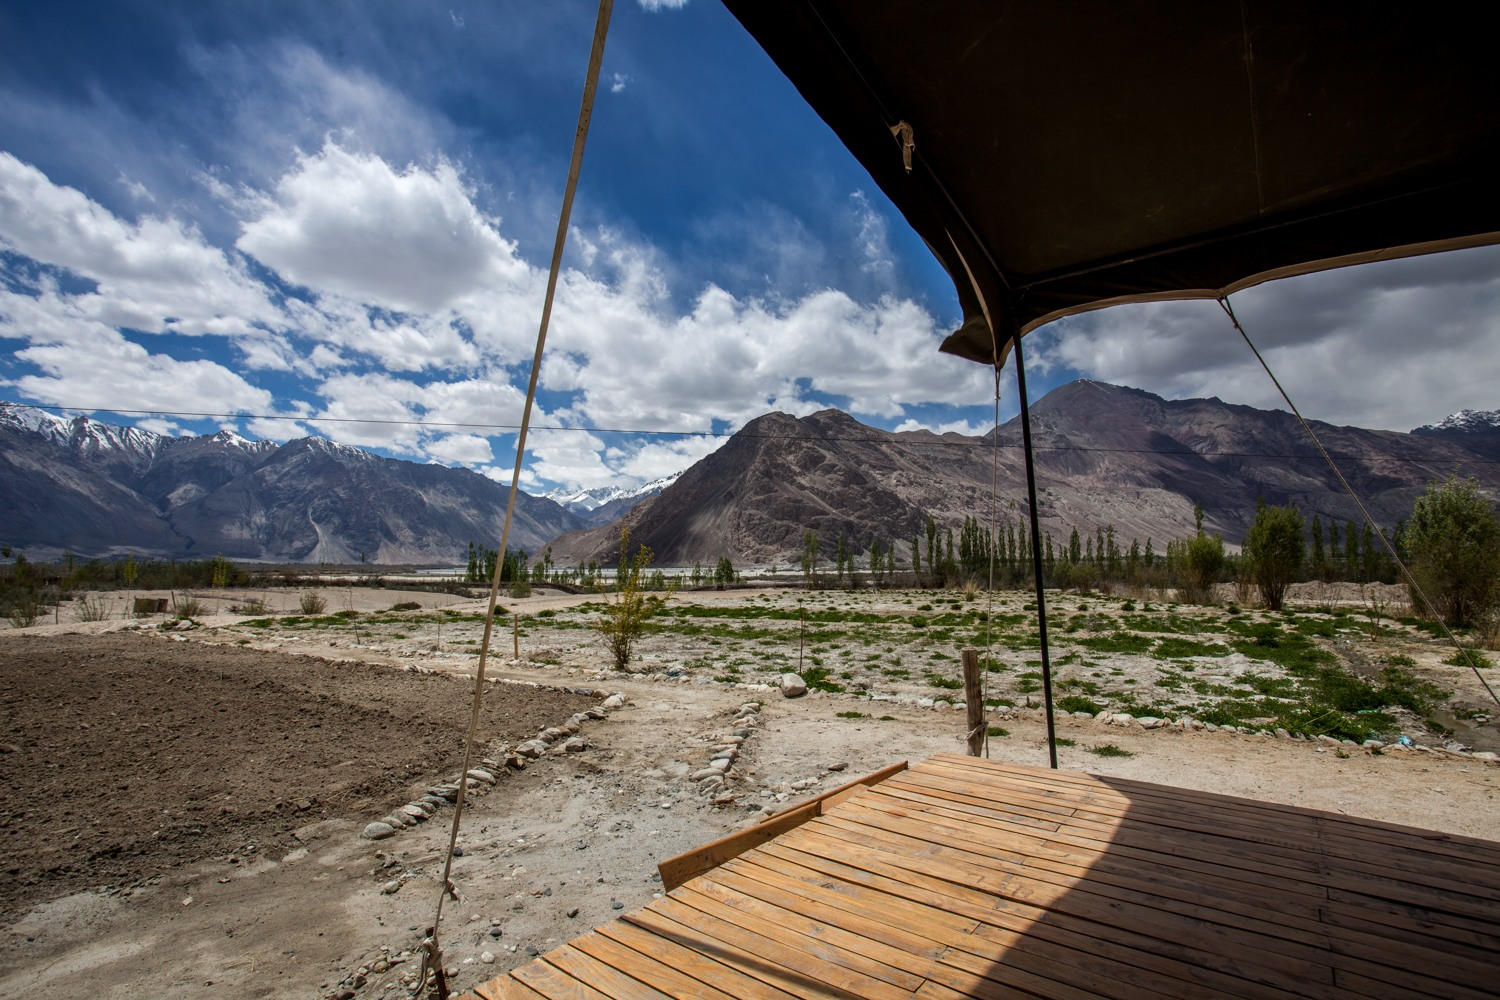 Nubra Eco Lodge, Nubra Valley, Ladakh